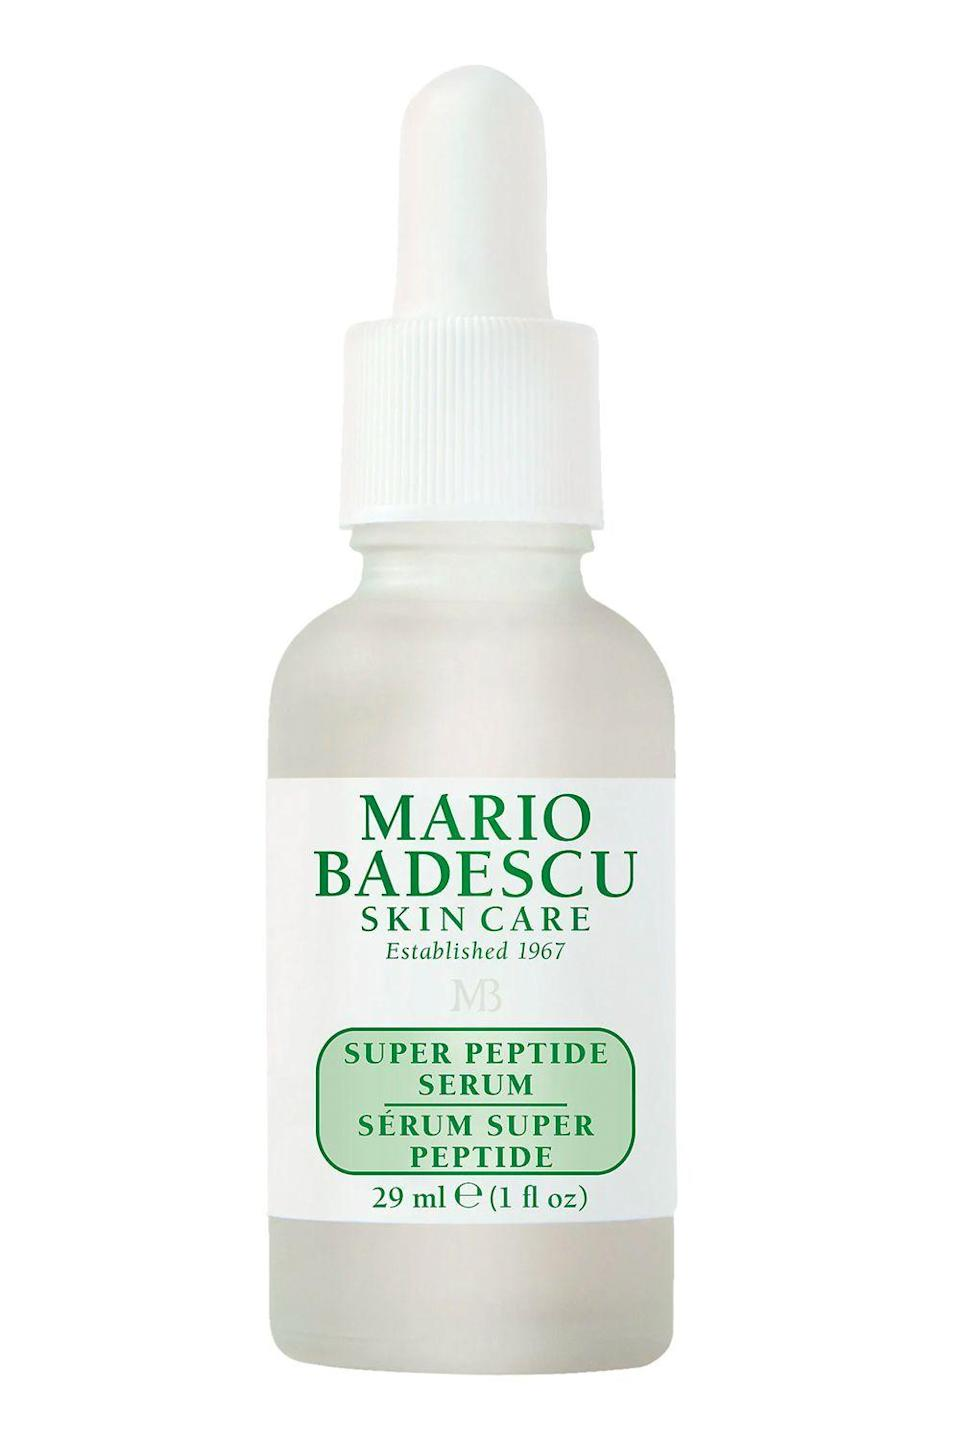 "<p><strong>Mario Badescu</strong></p><p>mariobadescu.com</p><p><strong>$45.00</strong></p><p><a href=""https://www.mariobadescu.com/product/super-peptide-serum"" rel=""nofollow noopener"" target=""_blank"" data-ylk=""slk:Shop Now"" class=""link rapid-noclick-resp"">Shop Now</a></p><p>This face <a href=""https://www.cosmopolitan.com/style-beauty/beauty/g25360983/best-face-serum/"" rel=""nofollow noopener"" target=""_blank"" data-ylk=""slk:serum"" class=""link rapid-noclick-resp"">serum</a> is a great option for anyone who wants to dip their toe into the world of anti-aging skincare. It uses collagen-boosting peptides, plumping hyaluronic acid, and conditioning plant extracts to smooth fine lines and wrinkles with continued use.</p><p><strong>✨PROMOTION:</strong> Get 30 percent off with the code HAULIDAY</p>"